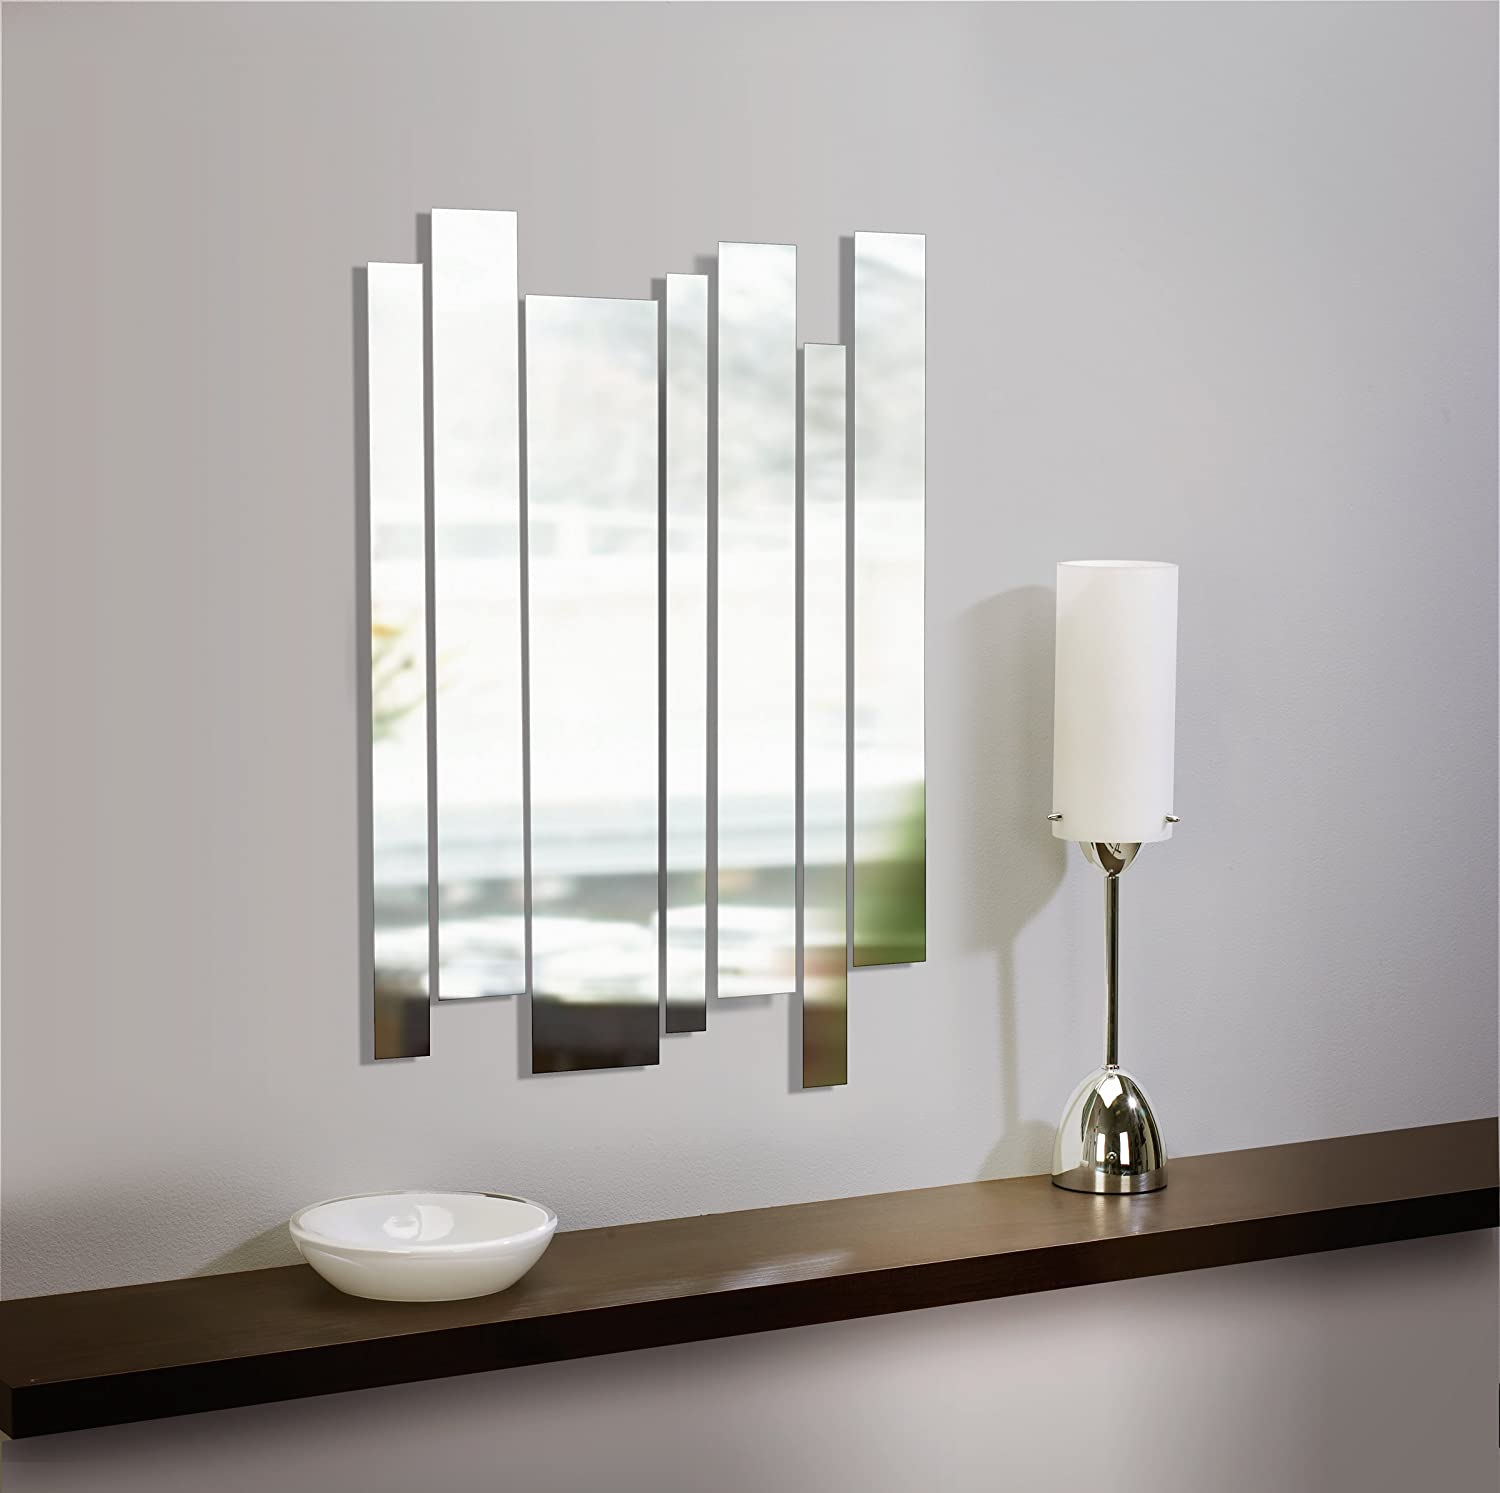 umbra strip wall mount mirrors set of 7 new free shipping ebay. Black Bedroom Furniture Sets. Home Design Ideas